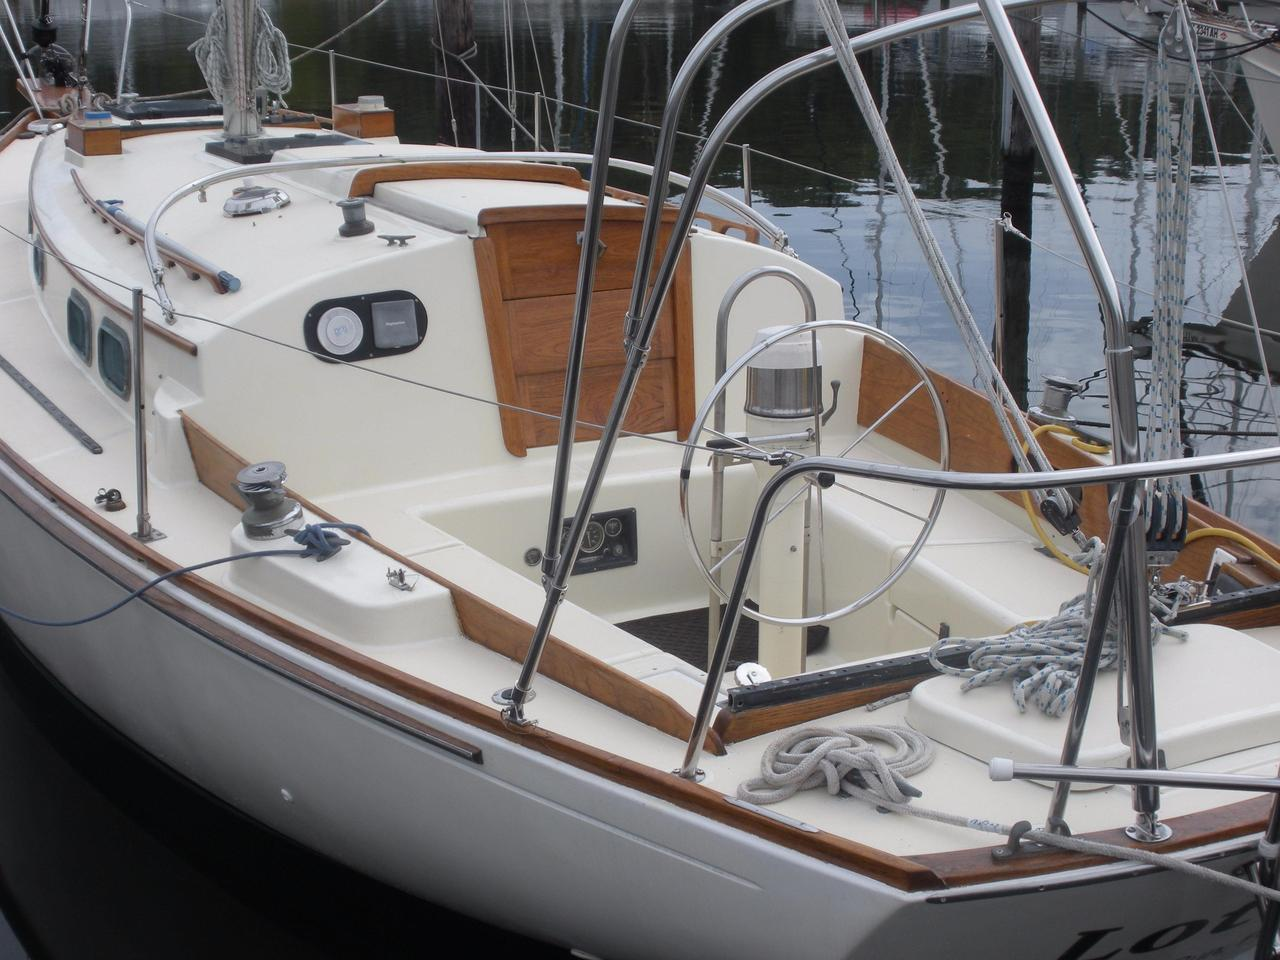 1983 used sea sprite 34 sloop sailboat for sale 34 900 rock rh moreboats com Voltmeter Gauge Wiring Diagram Automotive Wire Gauge